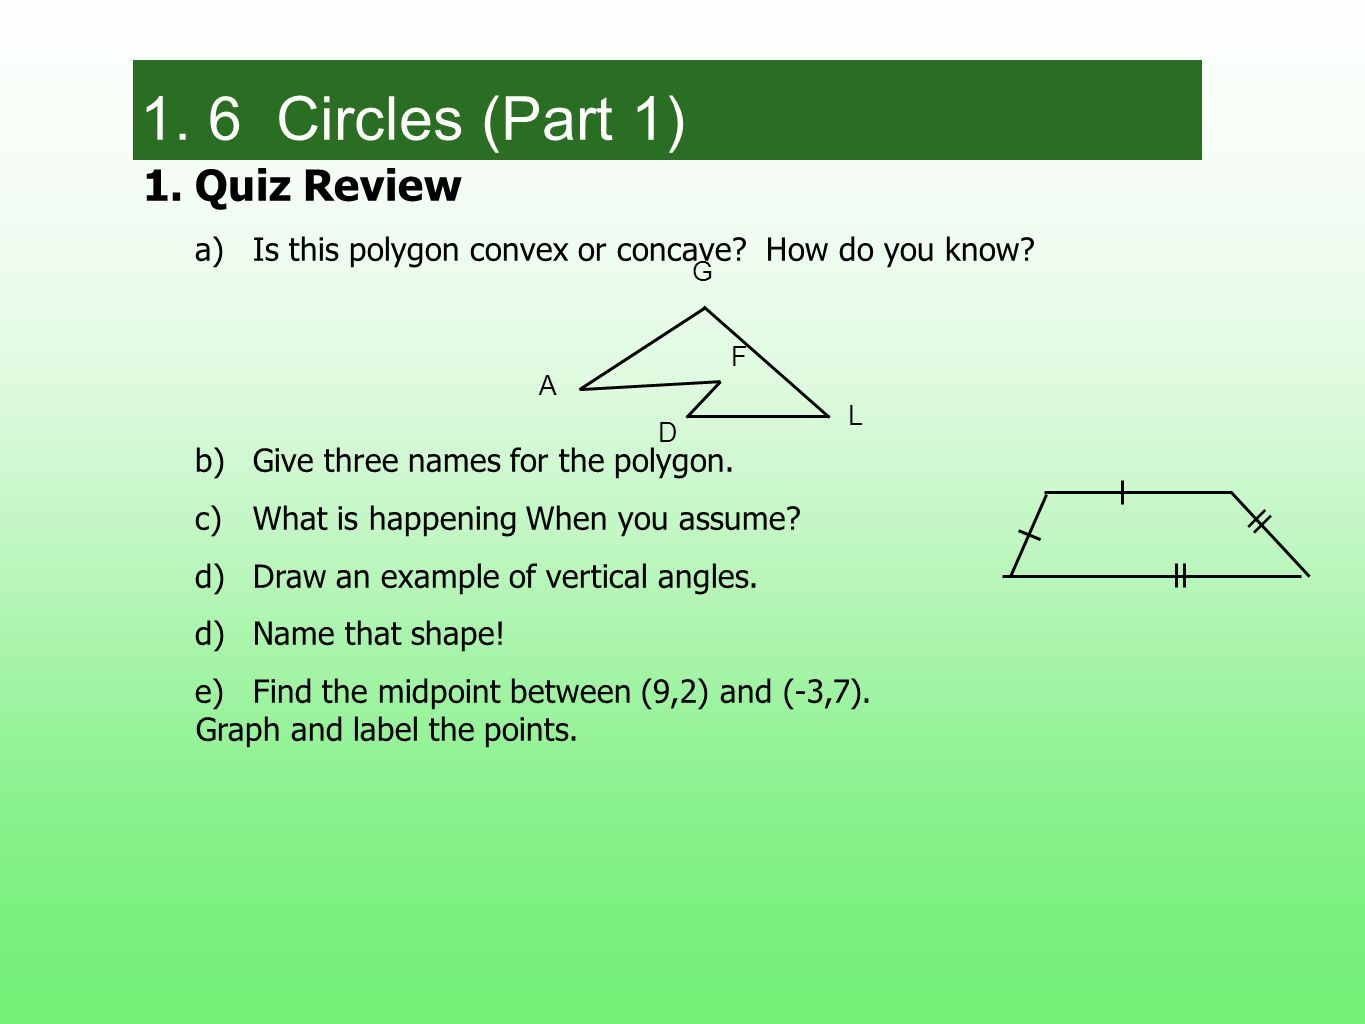 1.Quiz Review a)Is this polygon convex or concave? How do you know? b)Give three names for the polygon. c)What is happening When you assume? d)Draw an